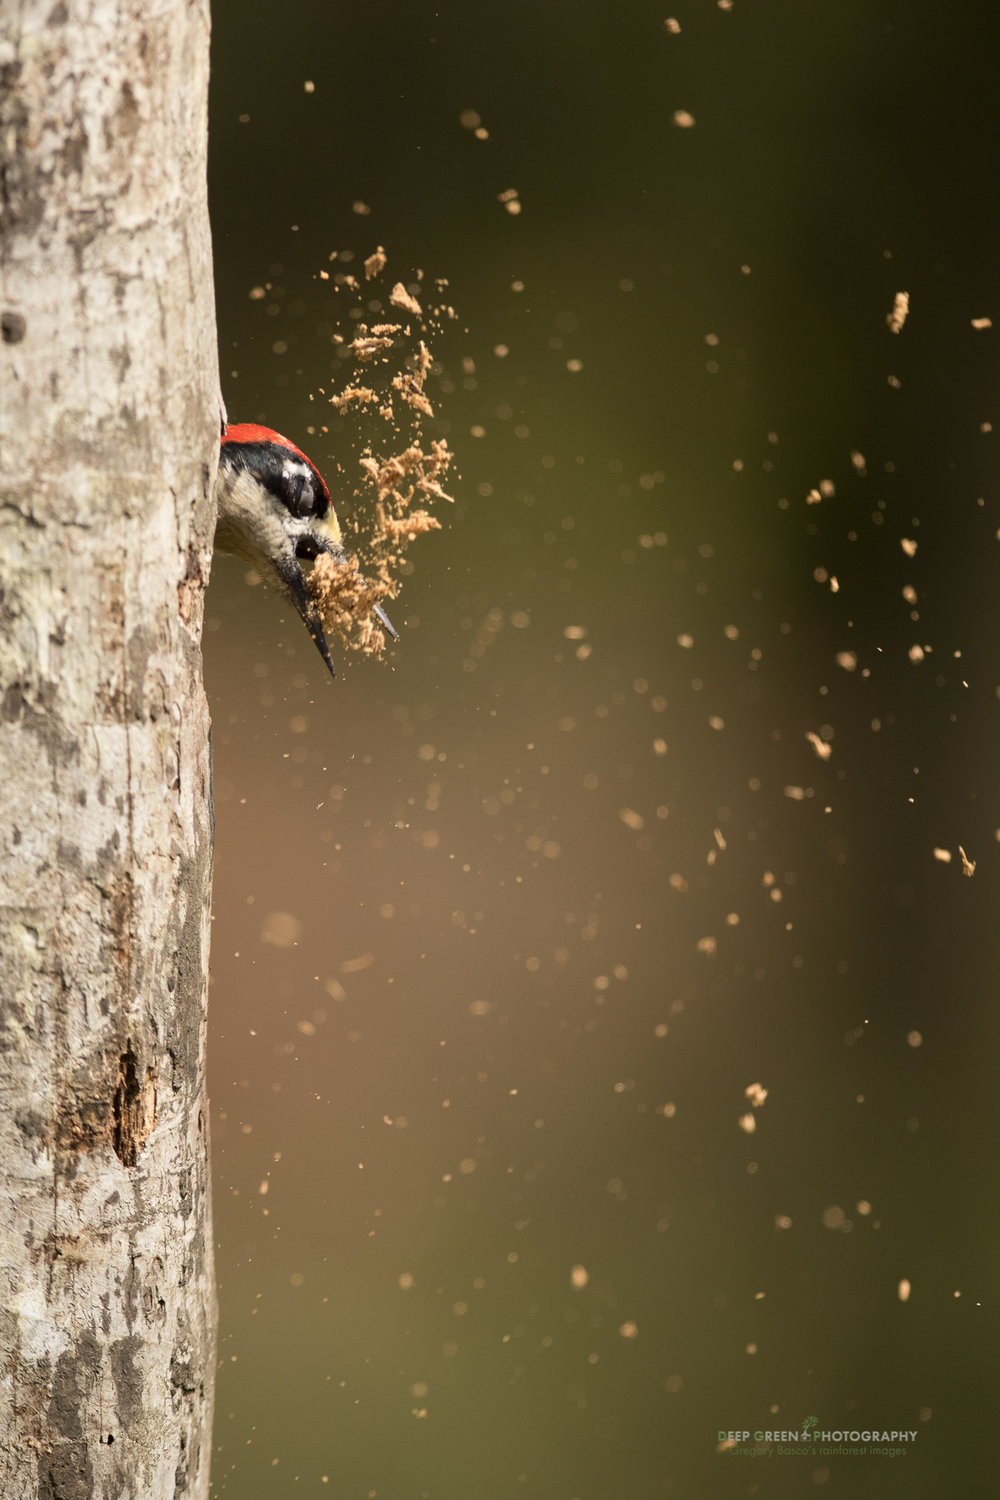 a black-cheeked woodpecker expels sawdust as it excavates a new nest cavity in a rainforest